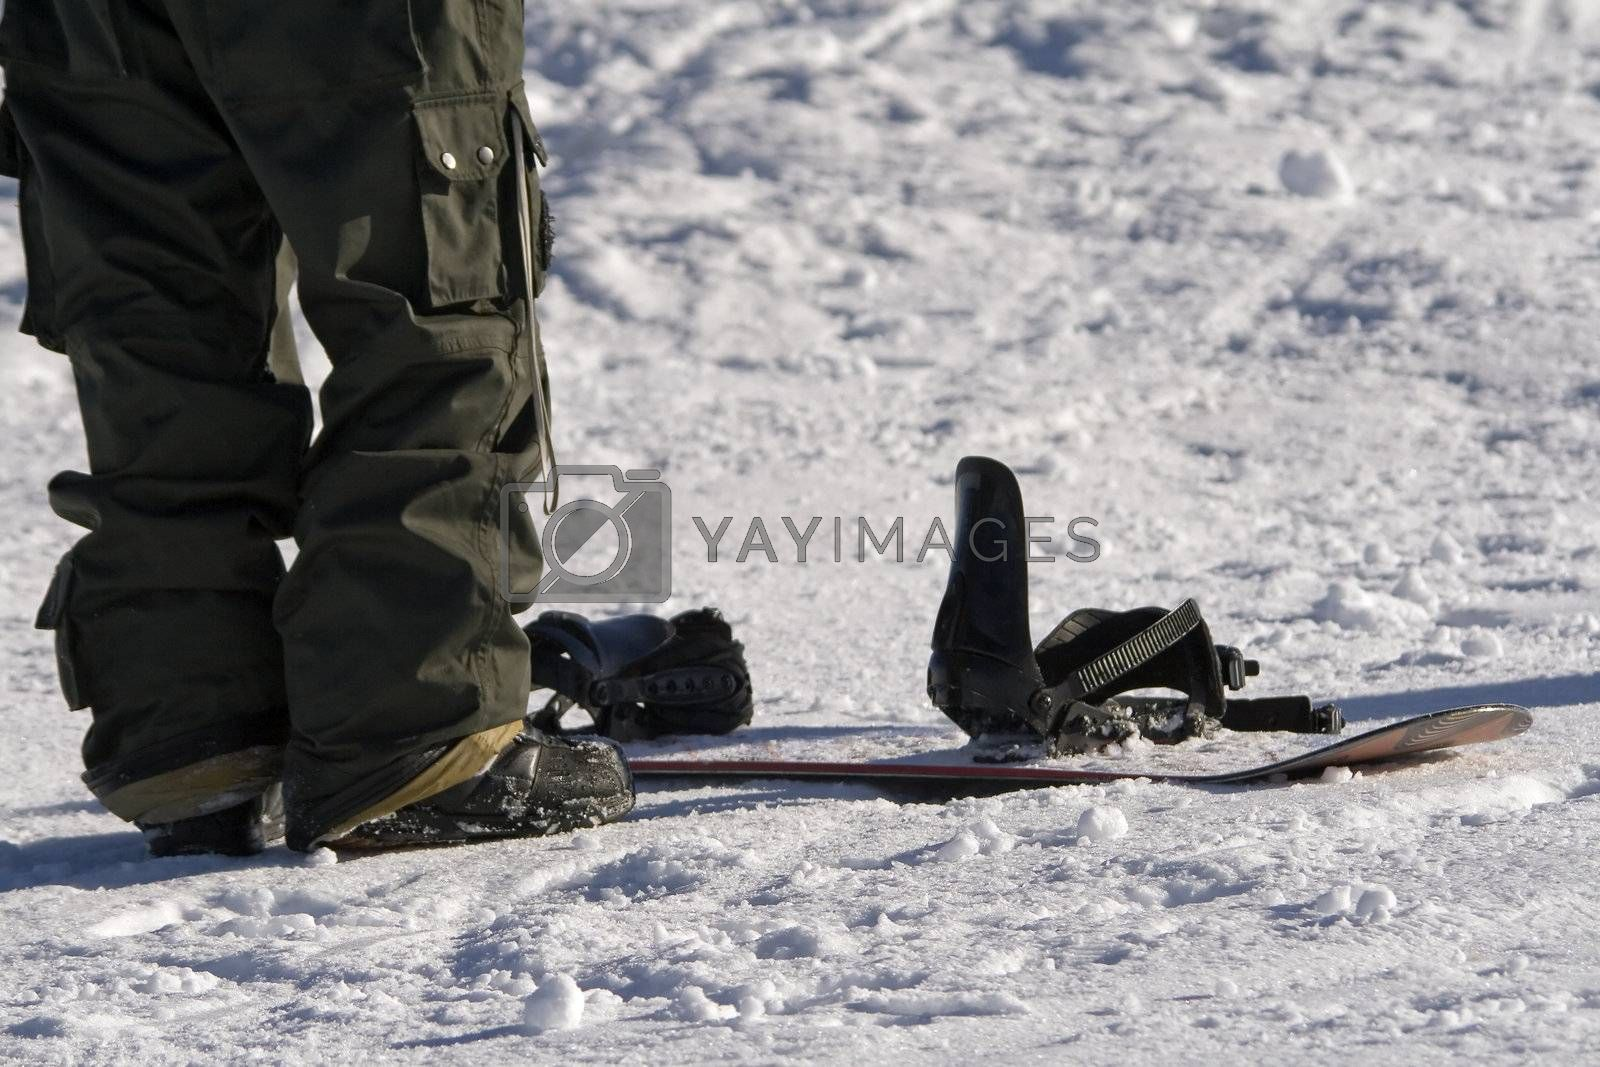 Snowboard feet  by PauloResende